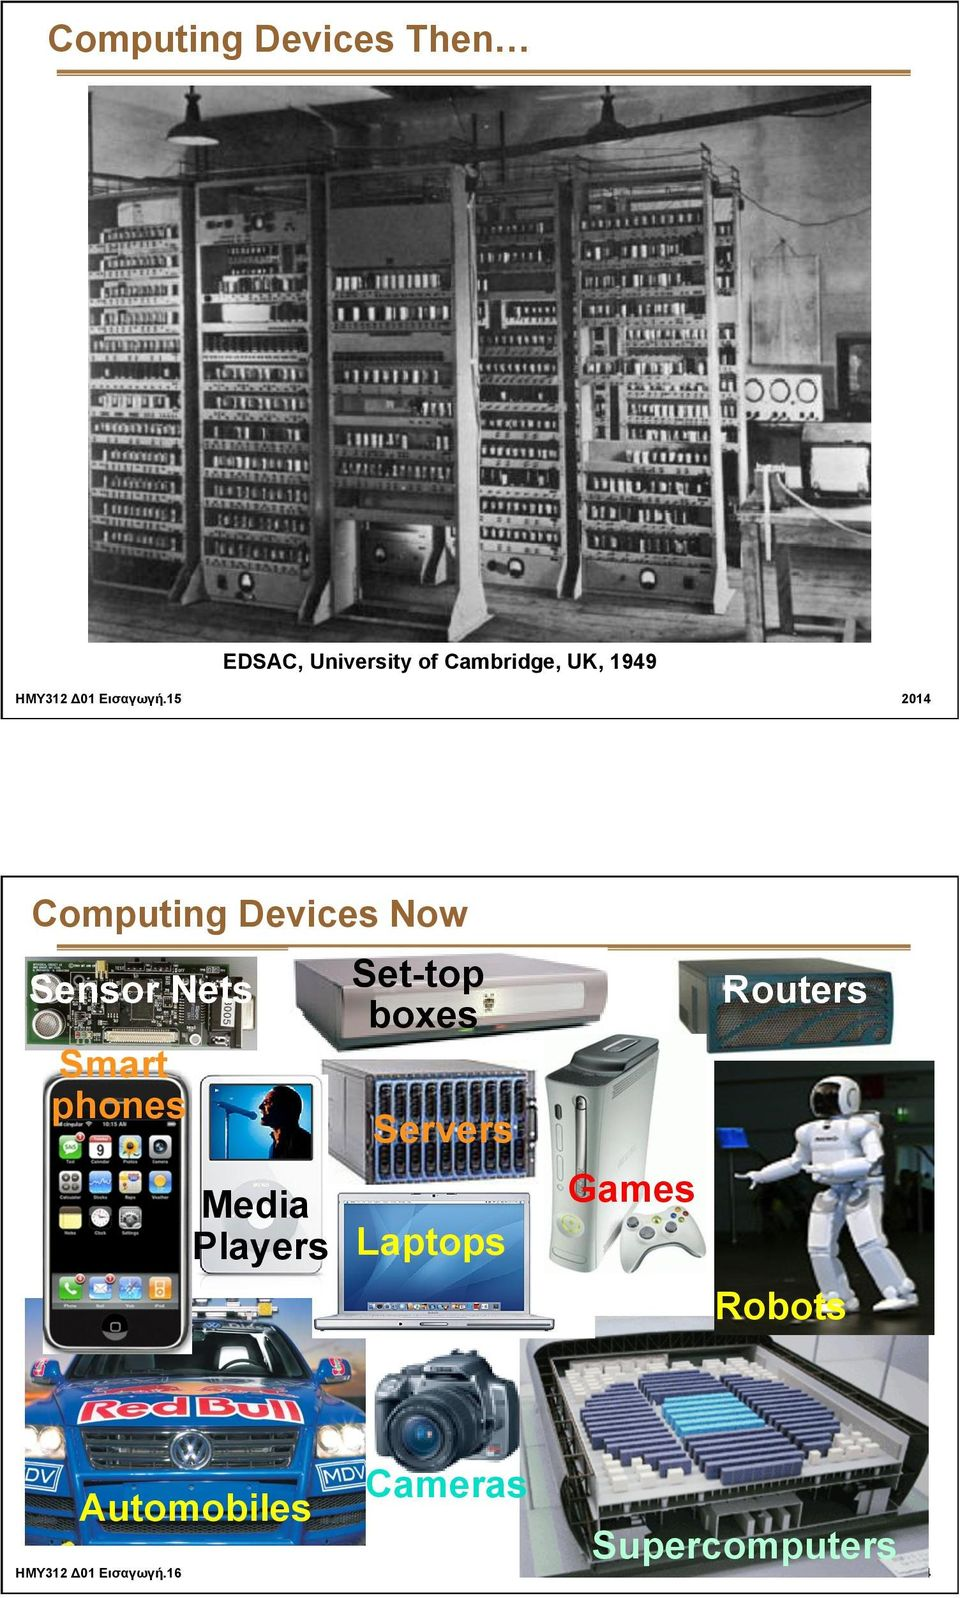 15 2014 Computing Devices Now Sensor Nets Smart phones Media